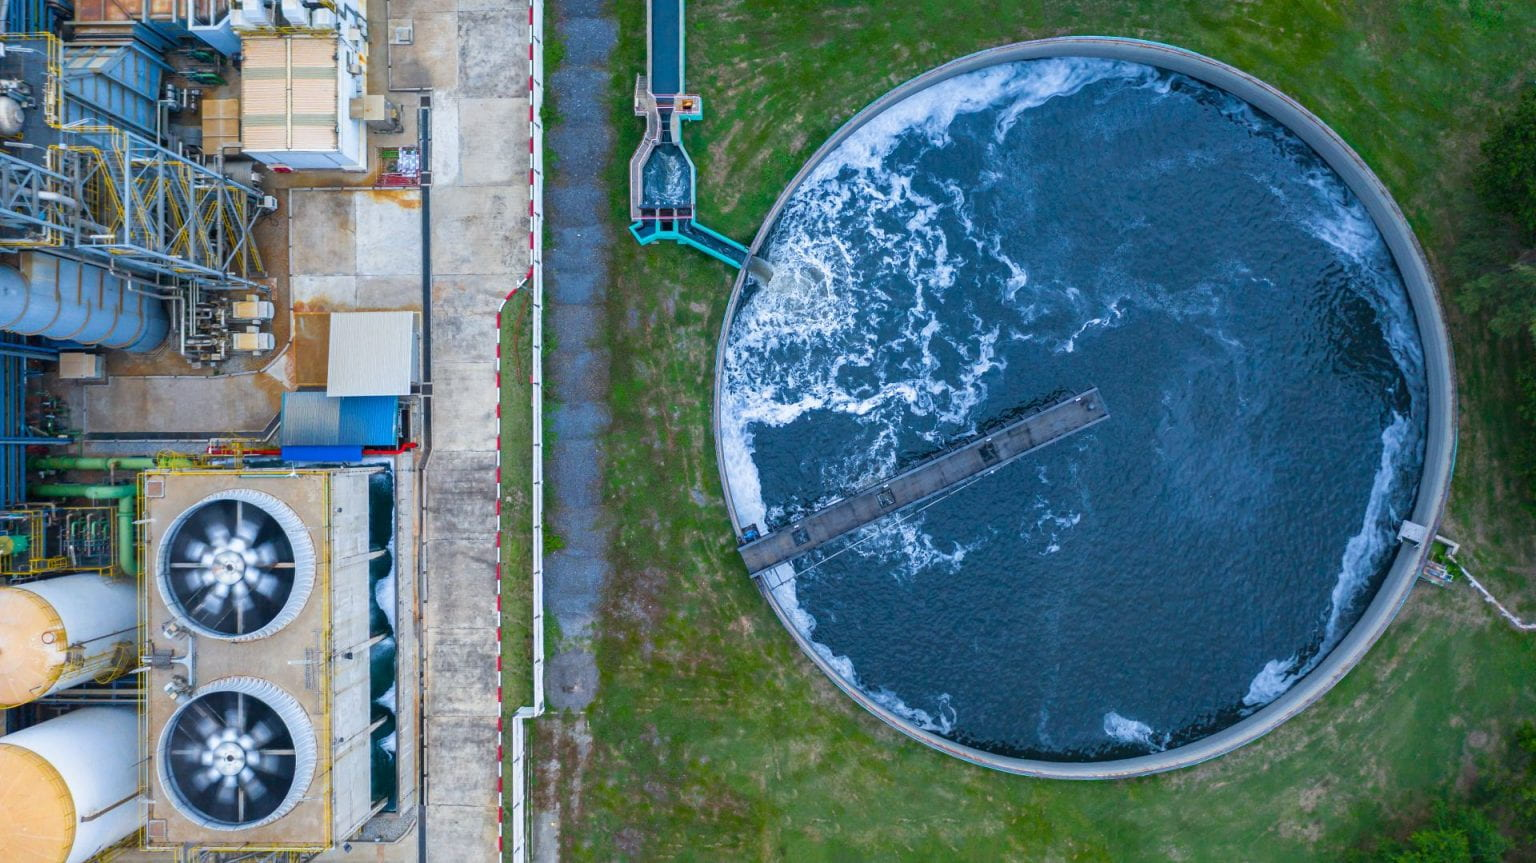 Aerial Photo Of A Wastewater Treatment Plant